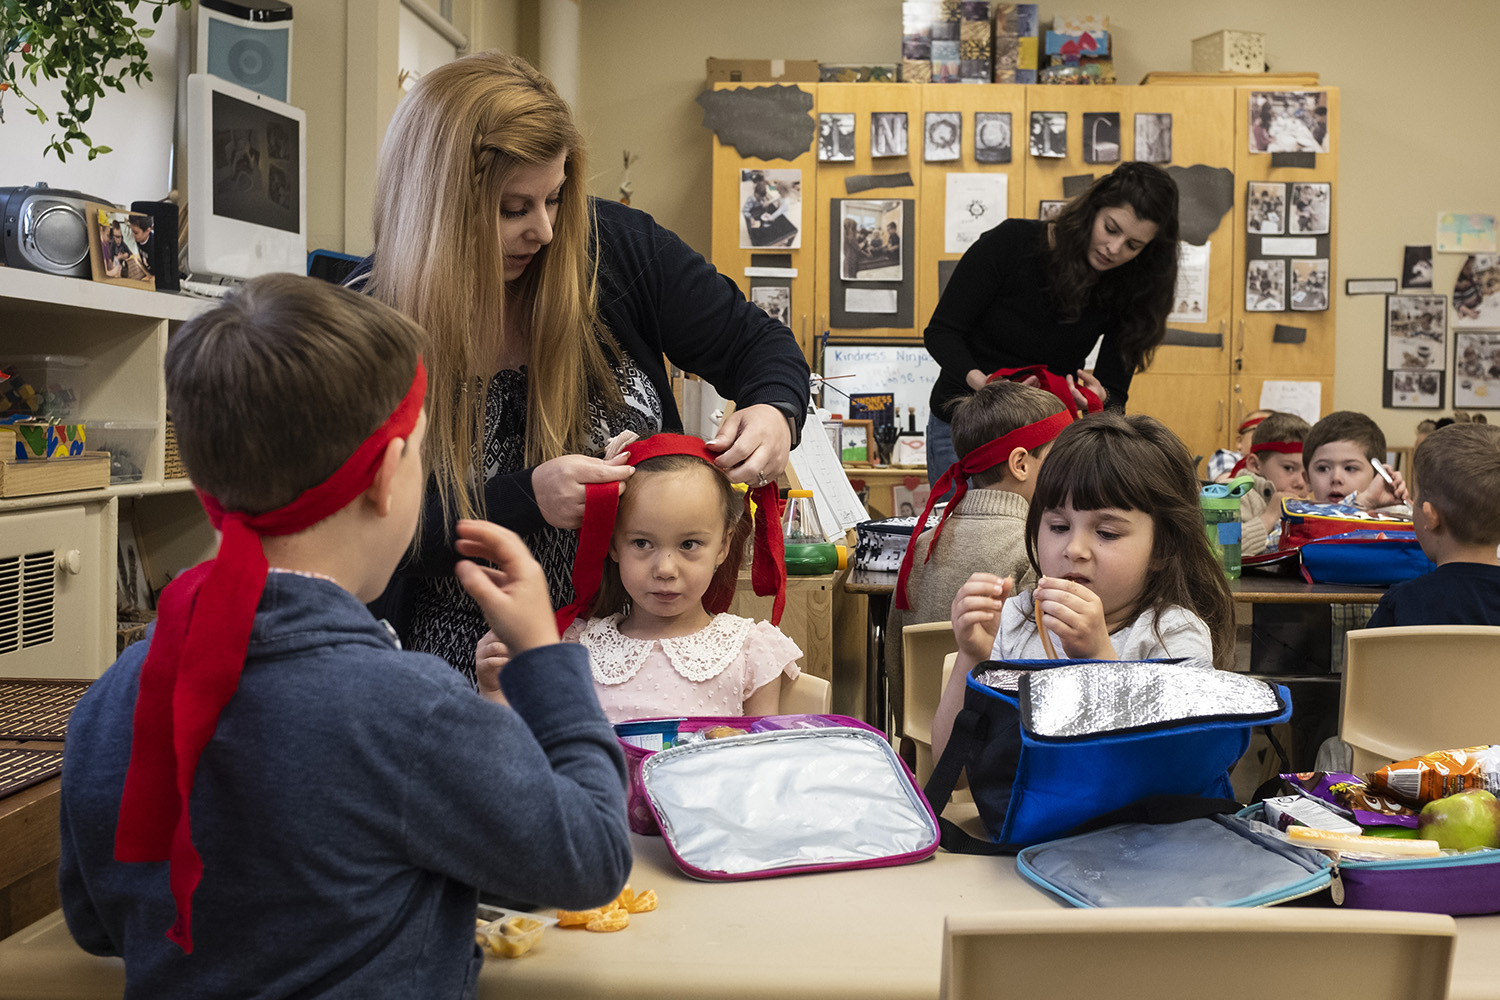 Kindergarten teacher Natalie Miller and early childhood educator Stephanie Rivard help the students with their ninja headbands moments before they leave to visit the elderly residents of Finlandia Village, Sudbury, Friday, May 31 , 2019. Every morning the kindergarten students of Larchwood Public School recite a pledge, tie on their red headbands, and transform into kindness ninjas. Their mission is to perform acts of kindness in their school and within their community.